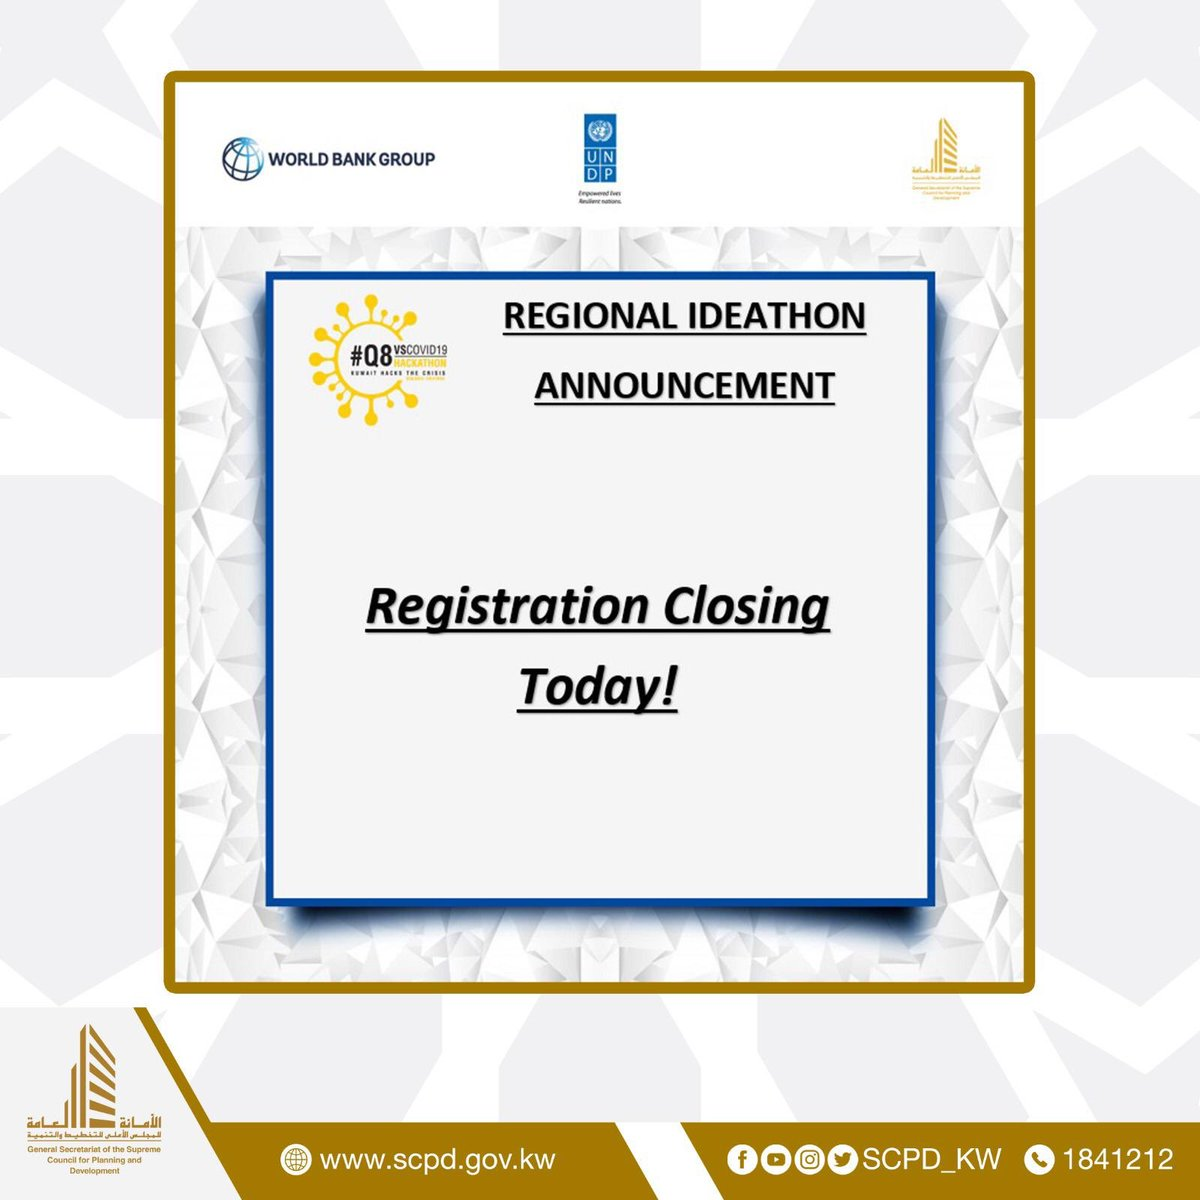 Ideathon registration closes today at 11:59 PM!  Registration link: https://t.co/reAxQnd1wL   Winning teams will receive awards!  1st place: $15,000  2nd: $10,000  3rd: $7,000 https://t.co/gJnjfkXuAt